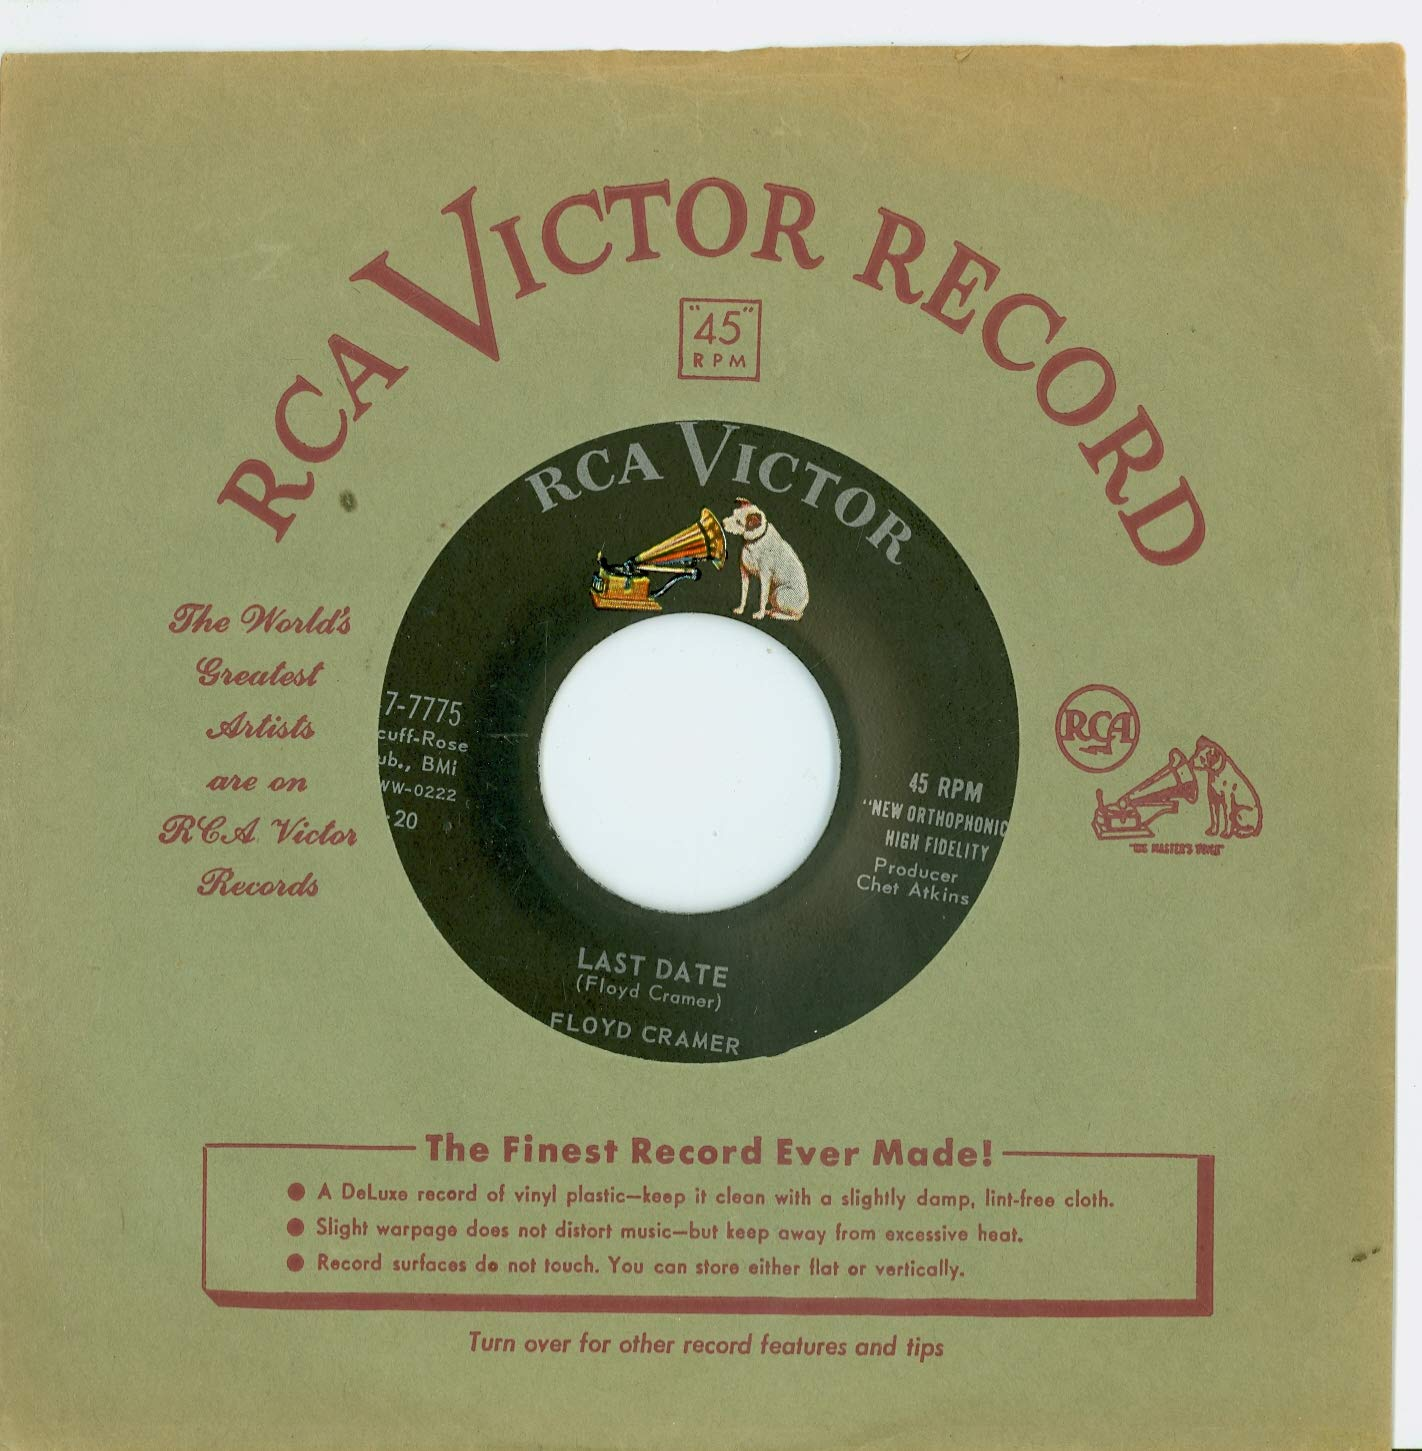 Dating RCA Victor Records